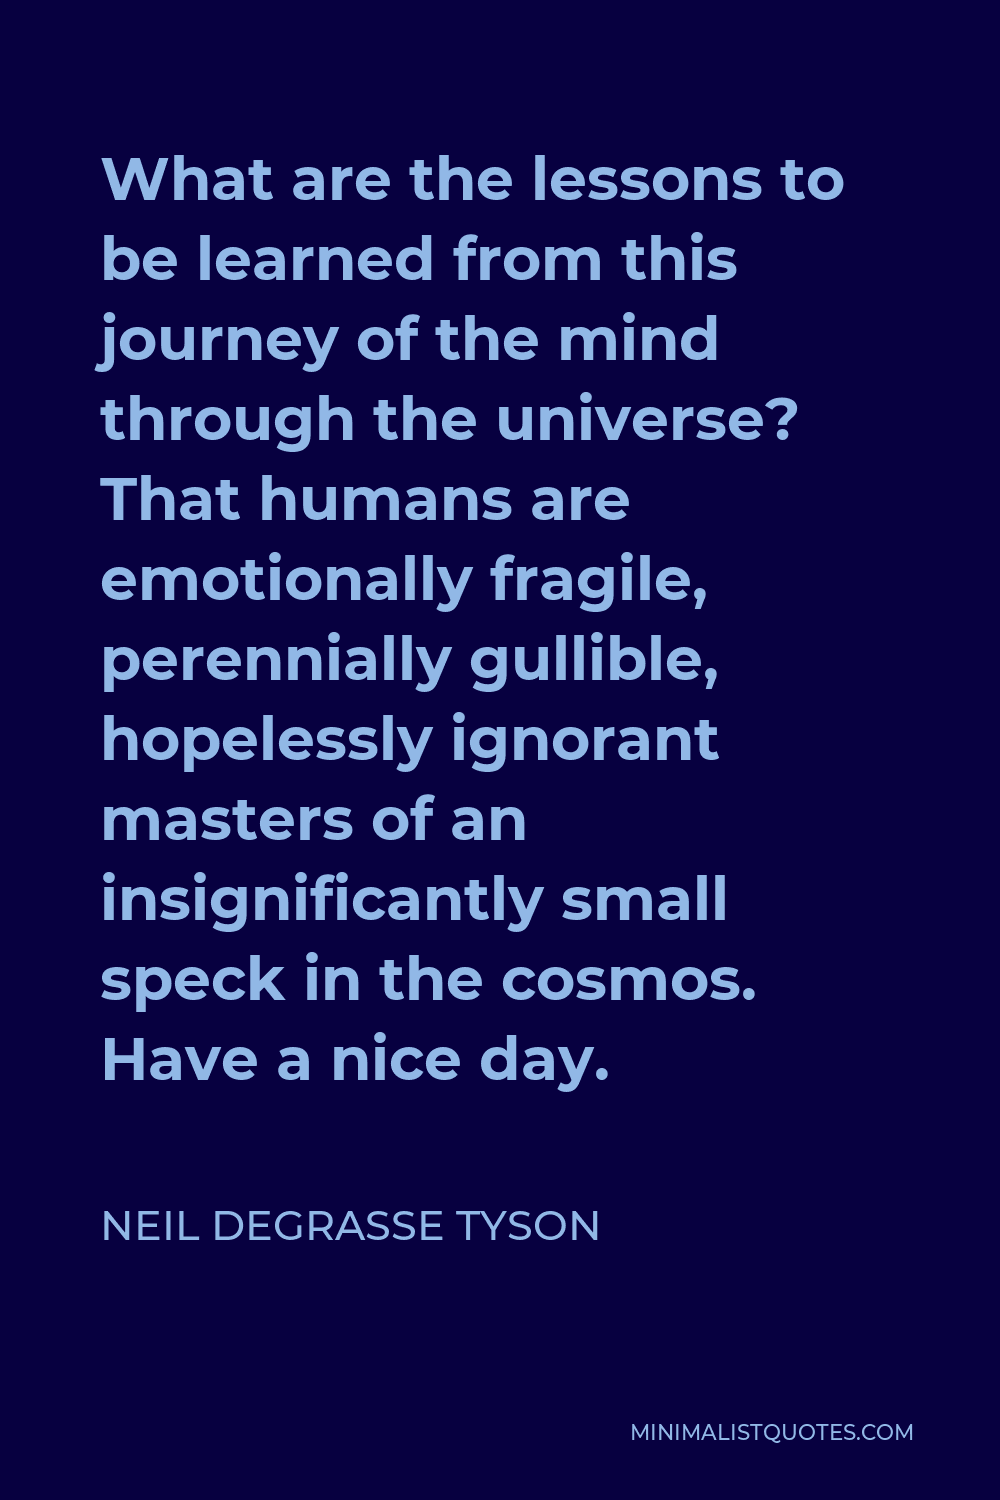 Neil deGrasse Tyson Quote - What are the lessons to be learned from this journey of the mind through the universe? That humans are emotionally fragile, perennially gullible, hopelessly ignorant masters of an insignificantly small speck in the cosmos. Have a nice day.